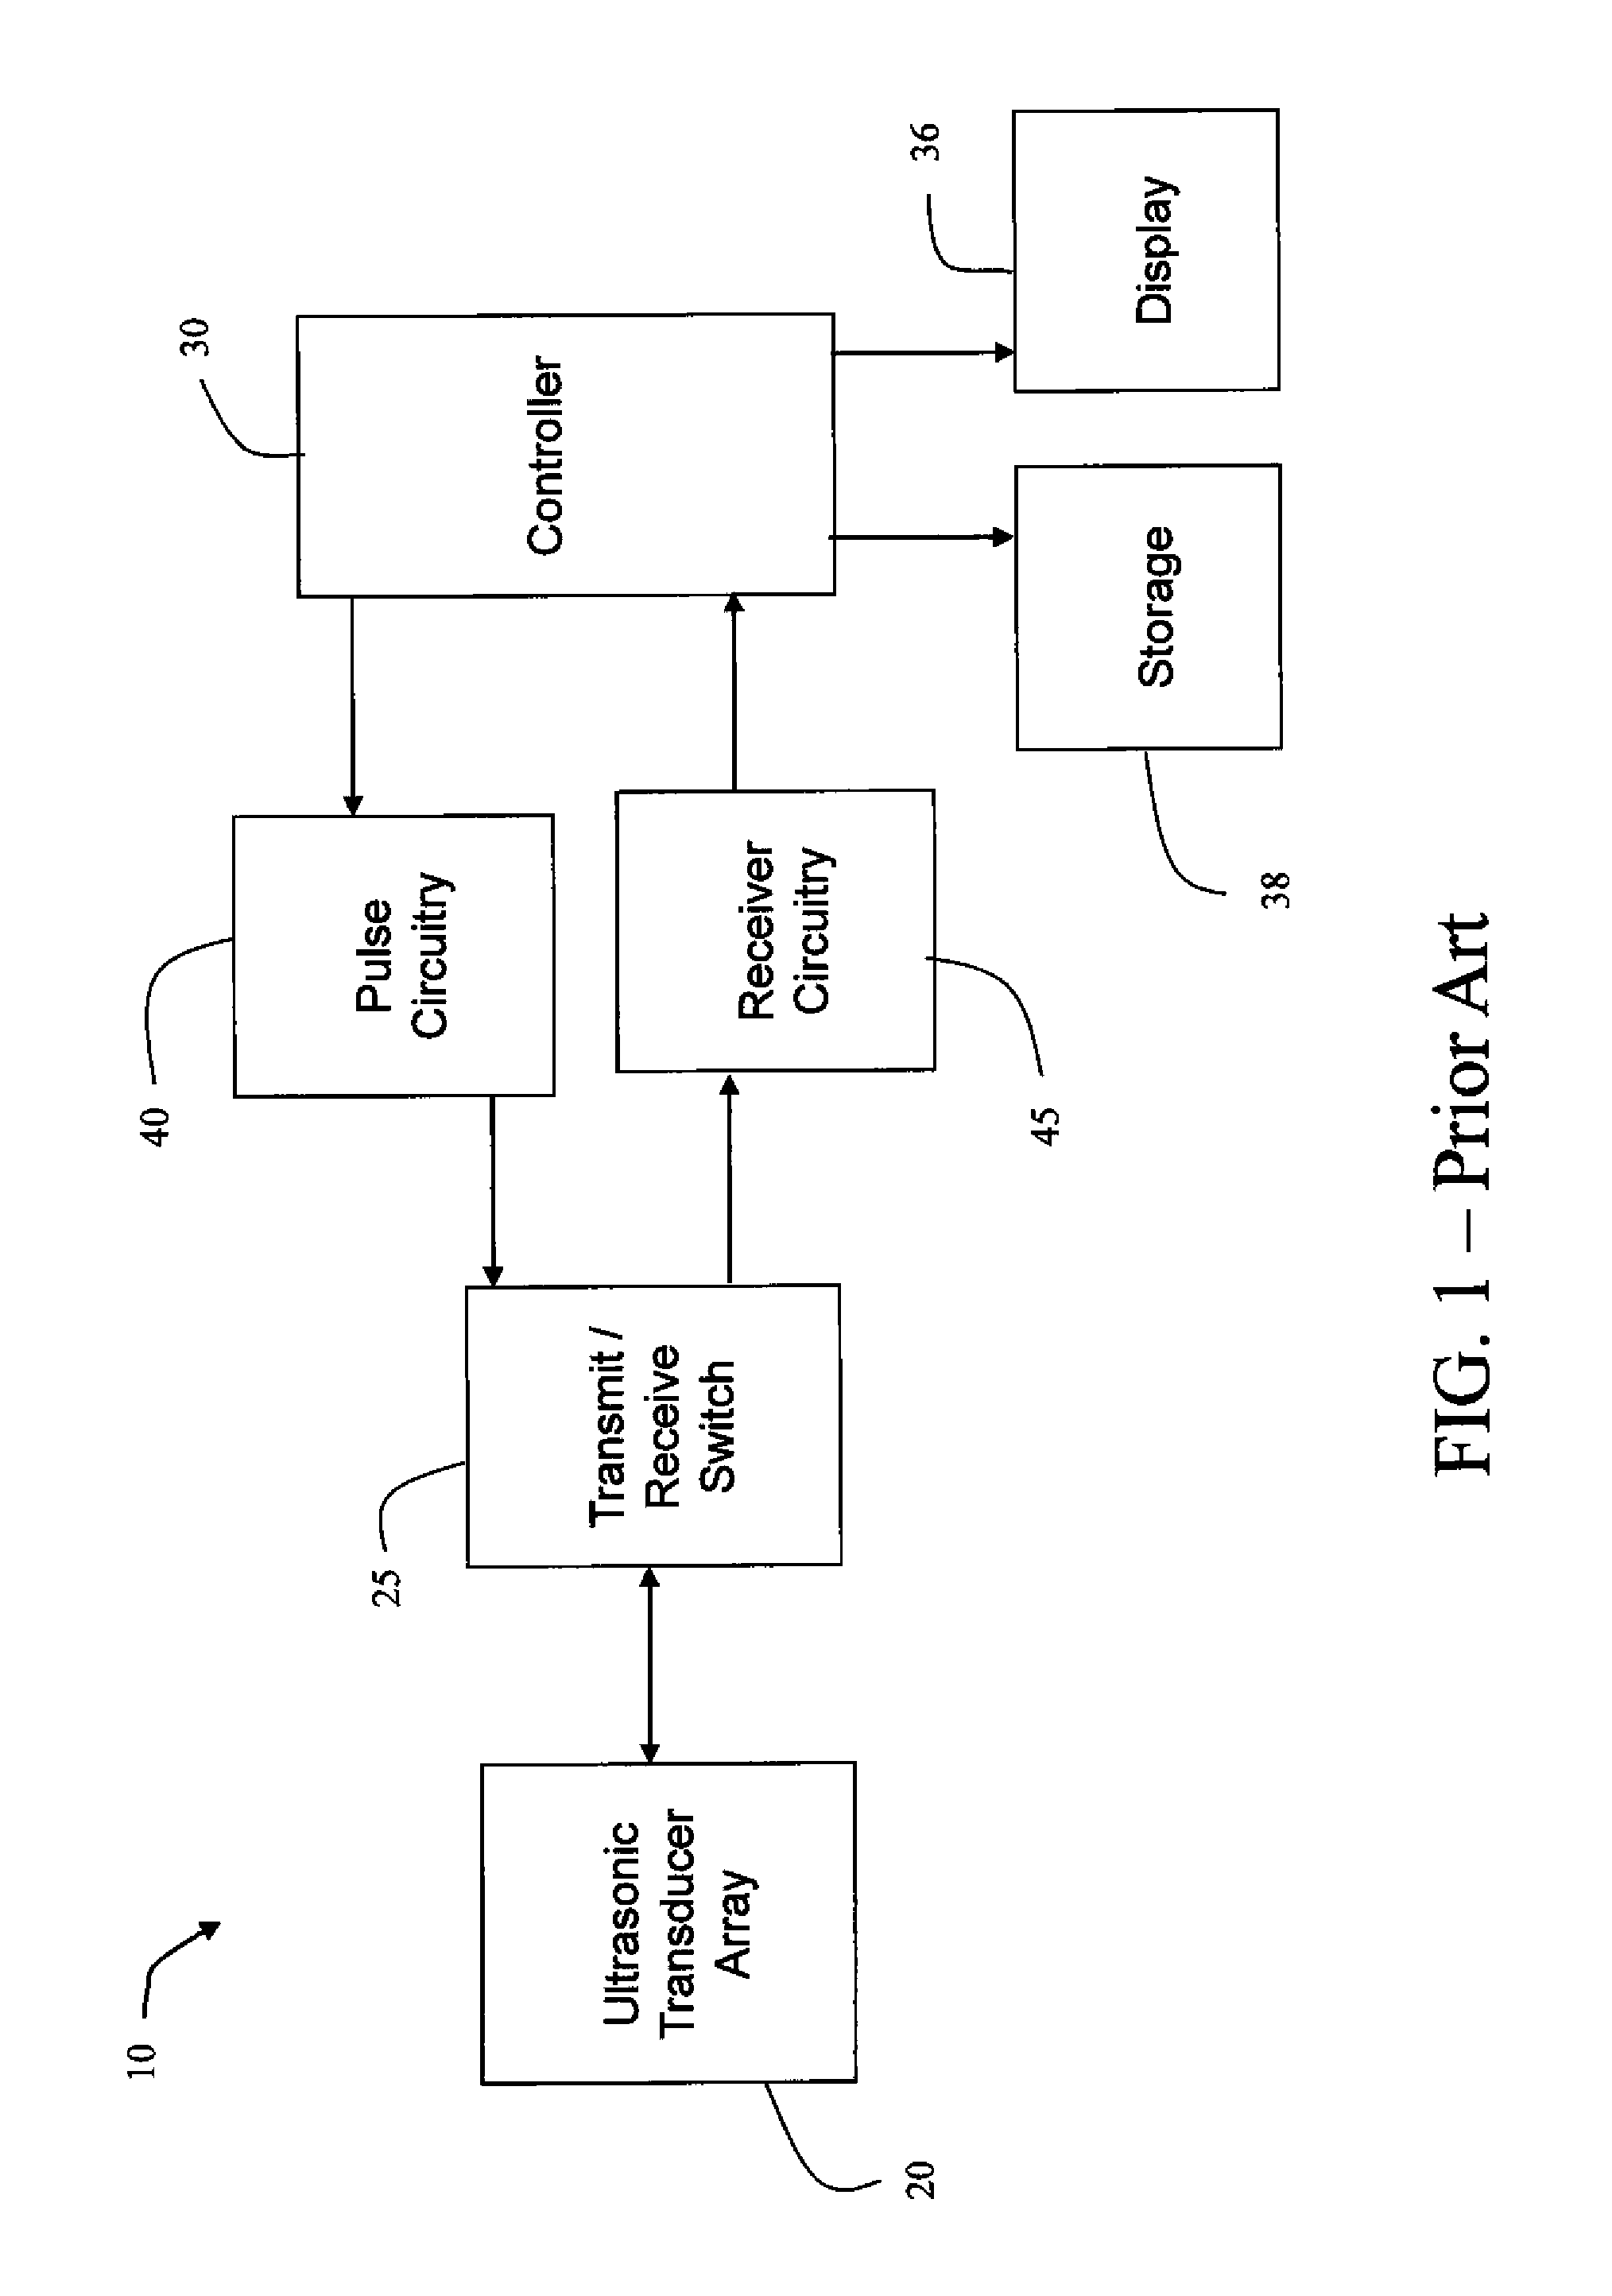 Ultrasonic Transmitter And Receiver Evointee Parking Sensor Circuit Electronic Circuits Diagramelectronics Patent Us20120269031 With